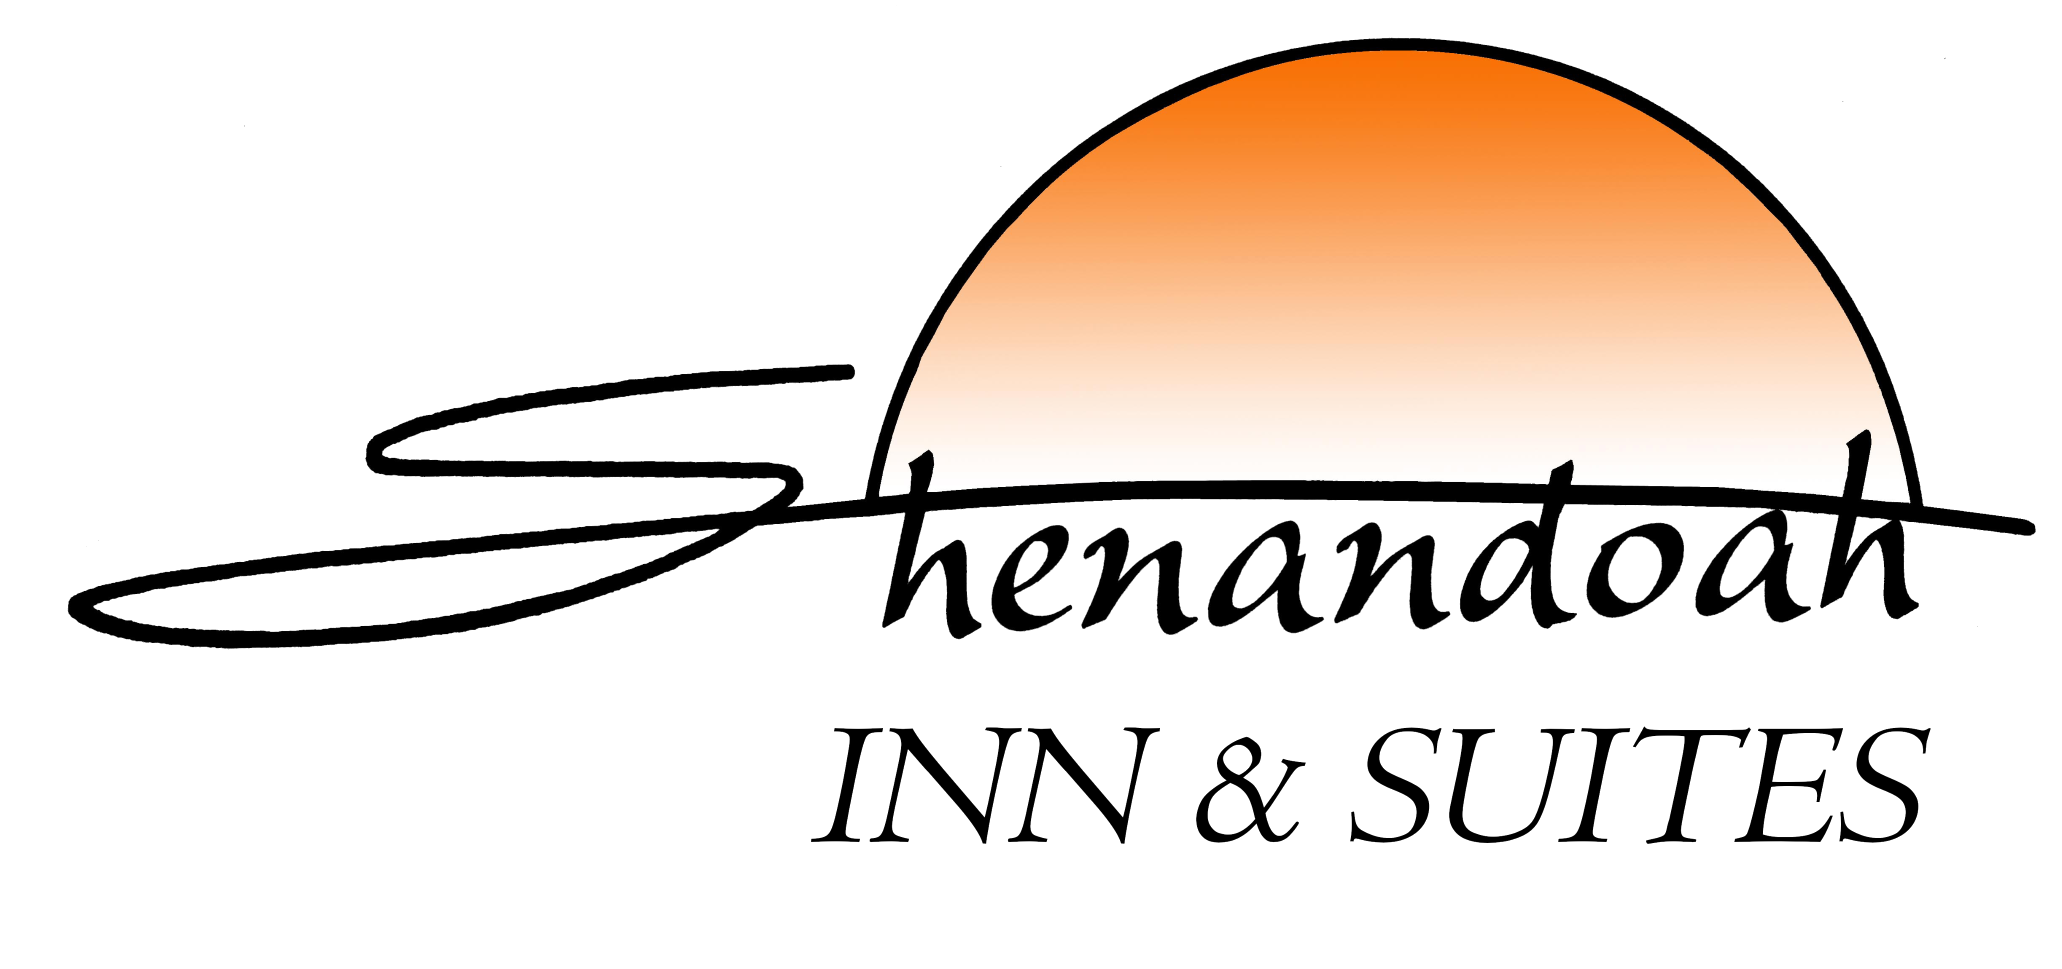 Shenandoah Inn and Suites